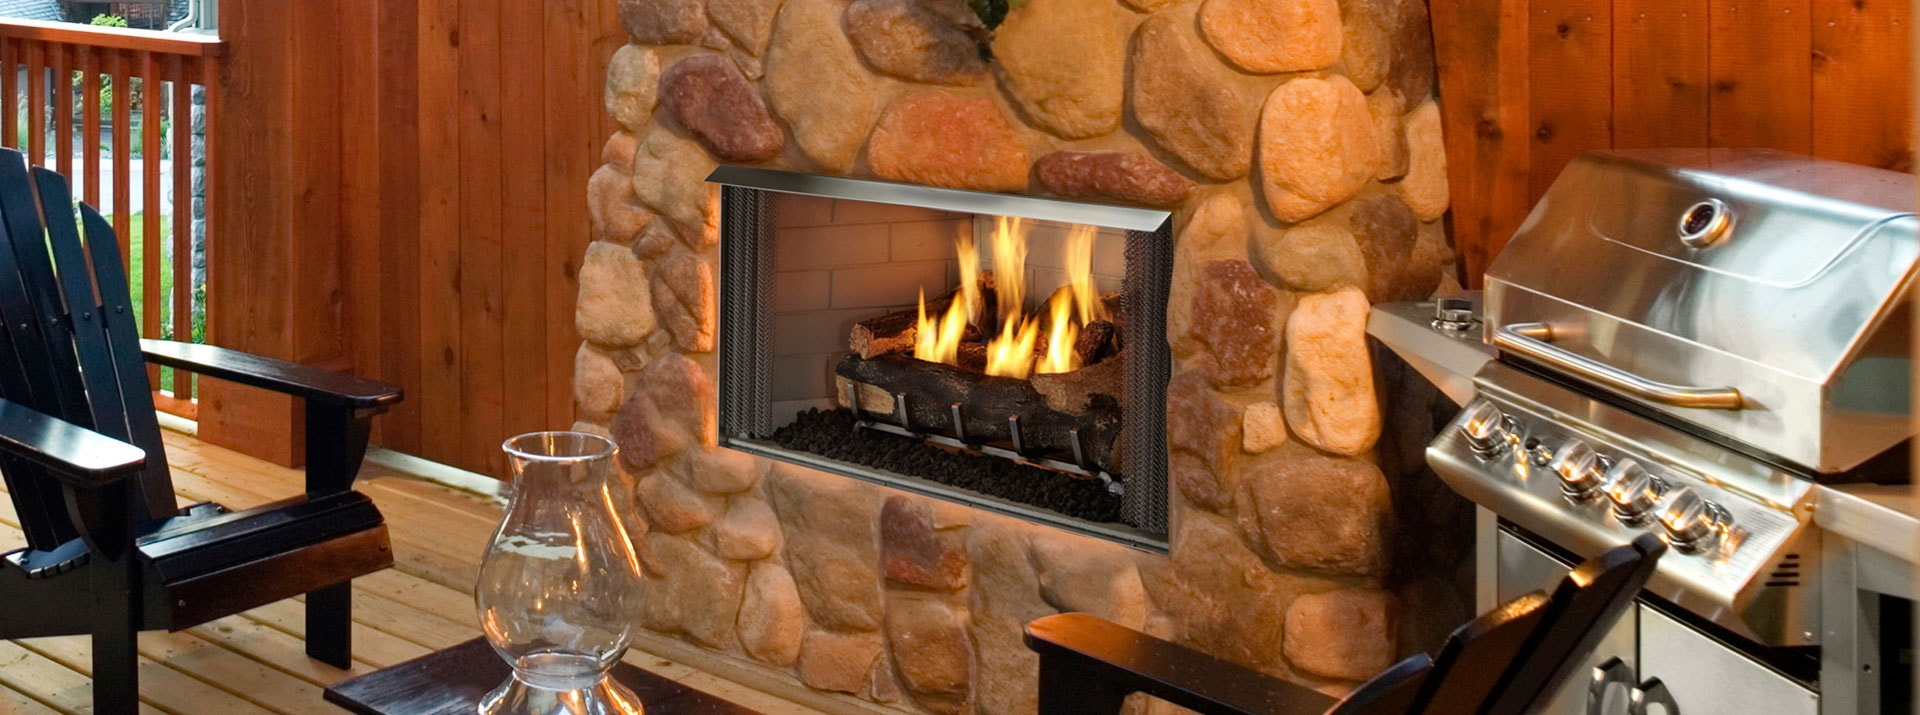 Metal Outdoor Fireplace with Chimney Luxury Outdoor Lifestyles Villa Gas Pact Outdoor Fireplace